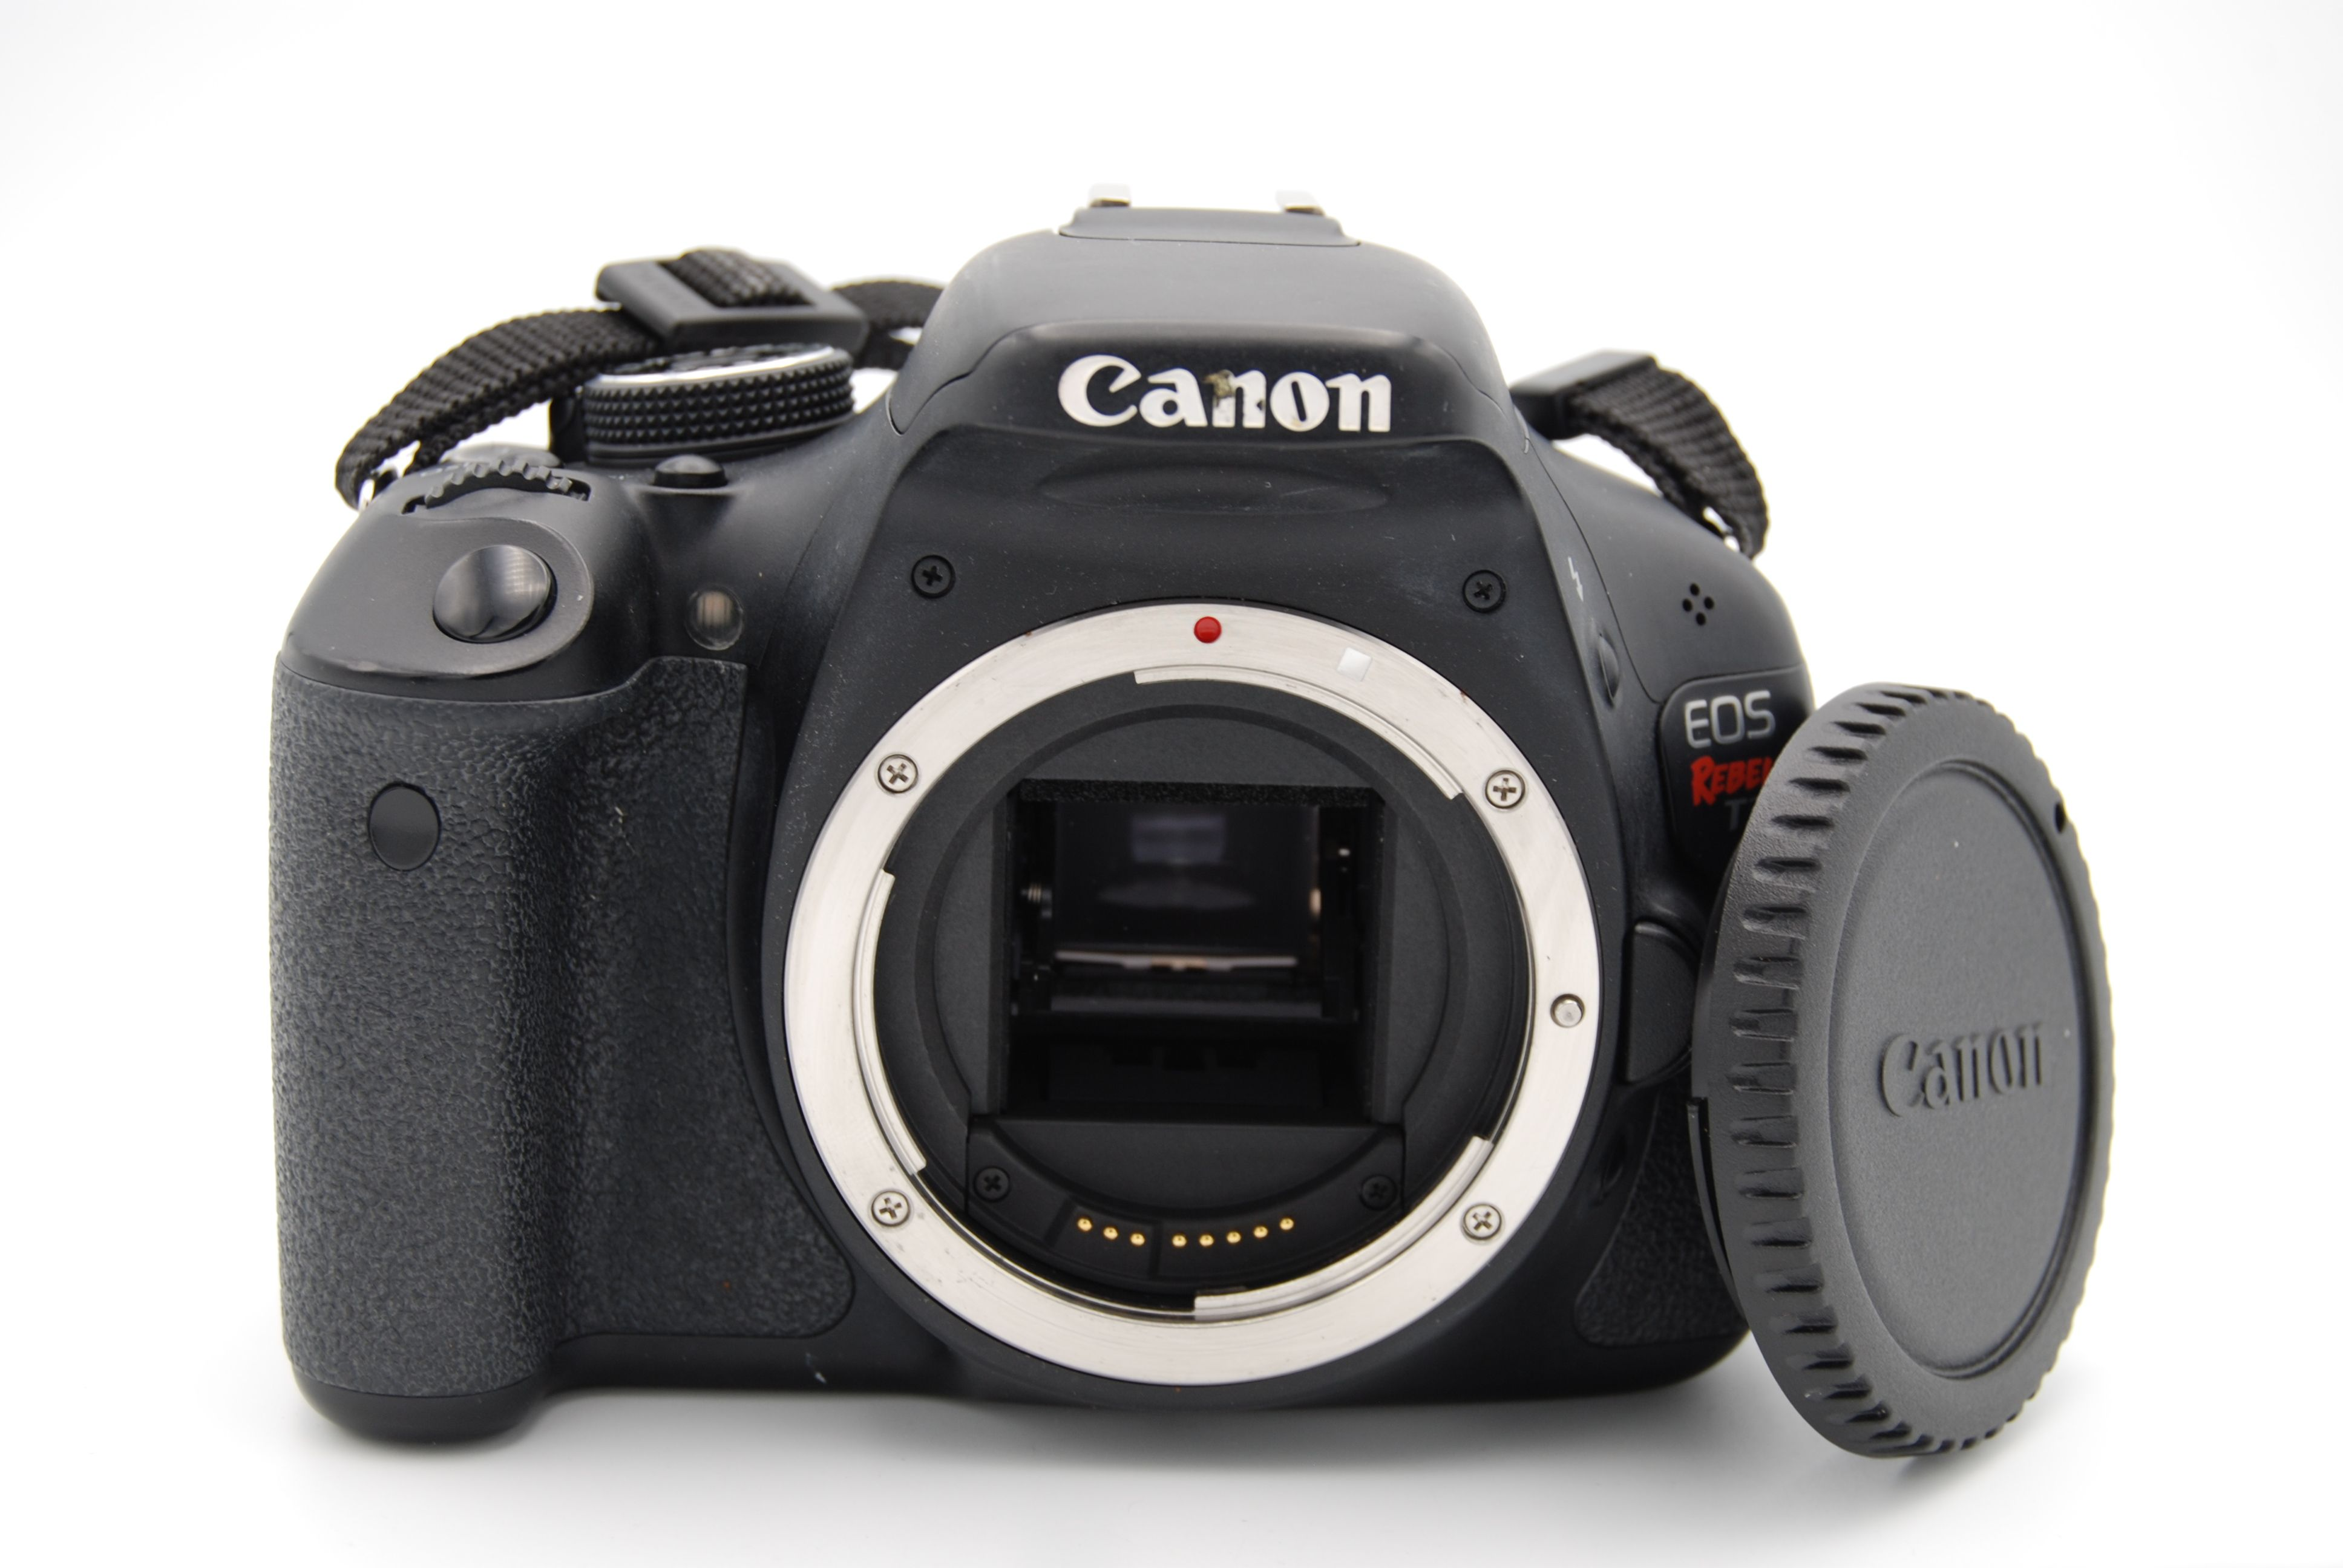 Details about Canon EOS Rebel T3i / EOS 600D 18 0MP Digital SLR Camera -  Black (Body Only)